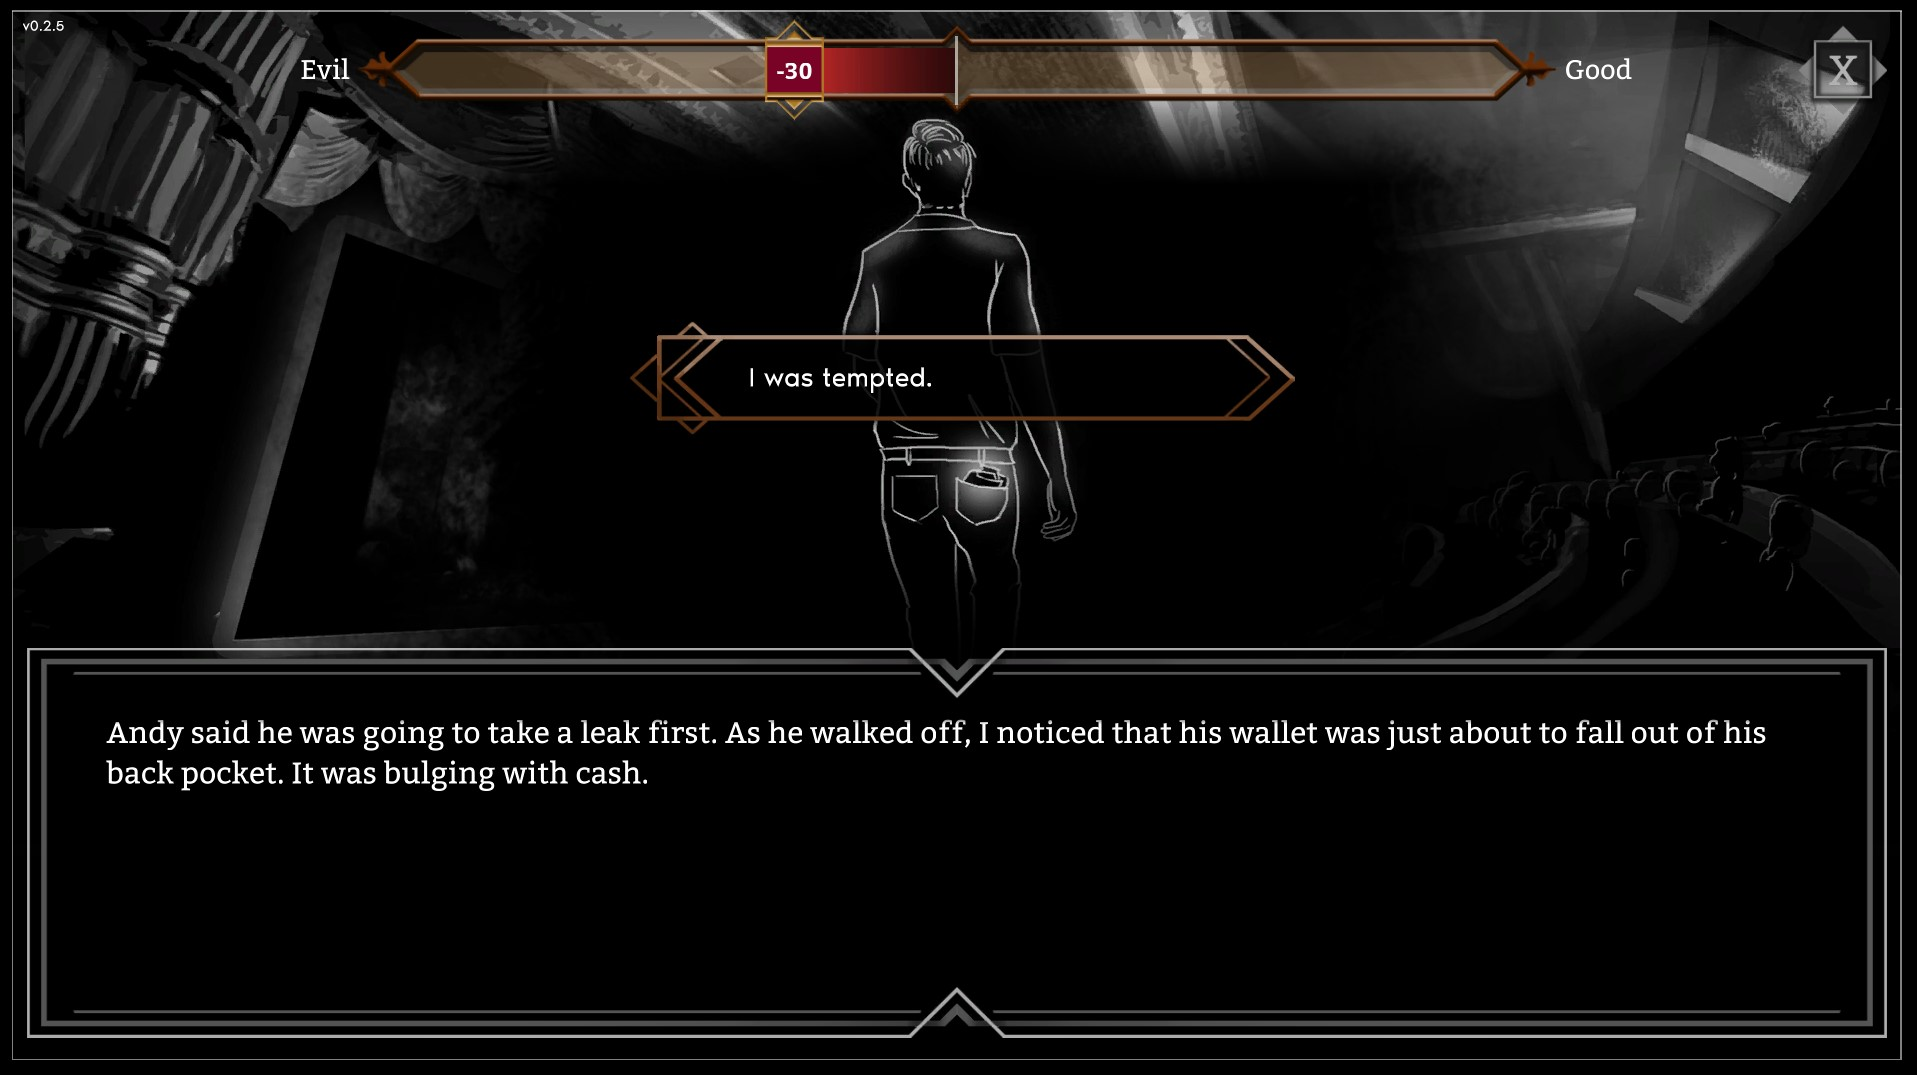 Screenshot a moral 'Dilemma' in The Great Fire. The player is tempted to trip and steal money from Andy, you must choose the Evil or Good option. The Great Fire is available on Windows and MacOS